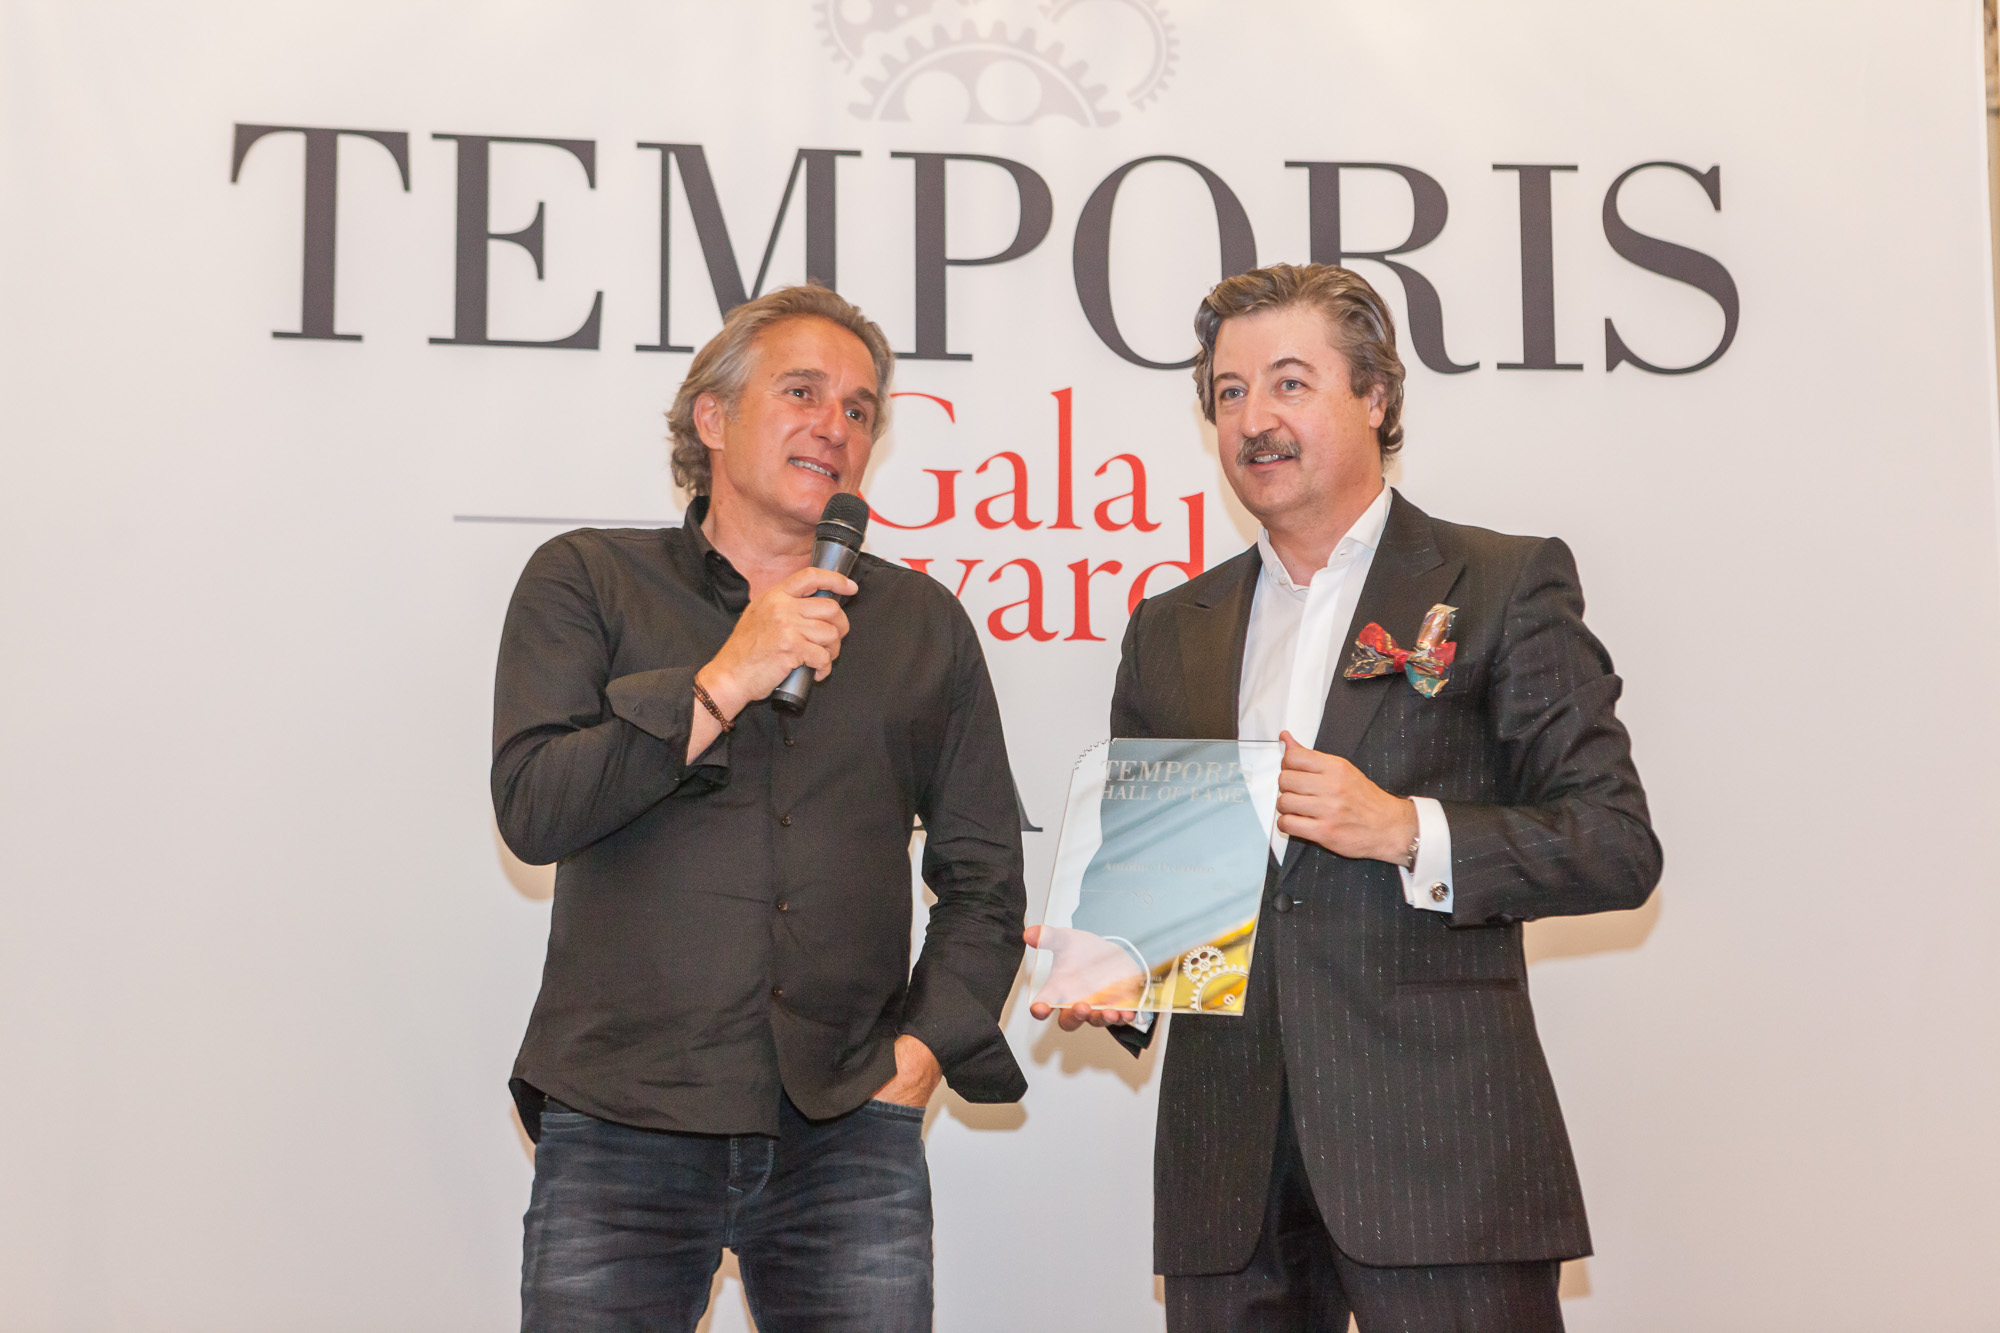 TEMPORIS Awards Gala 2015 (14)